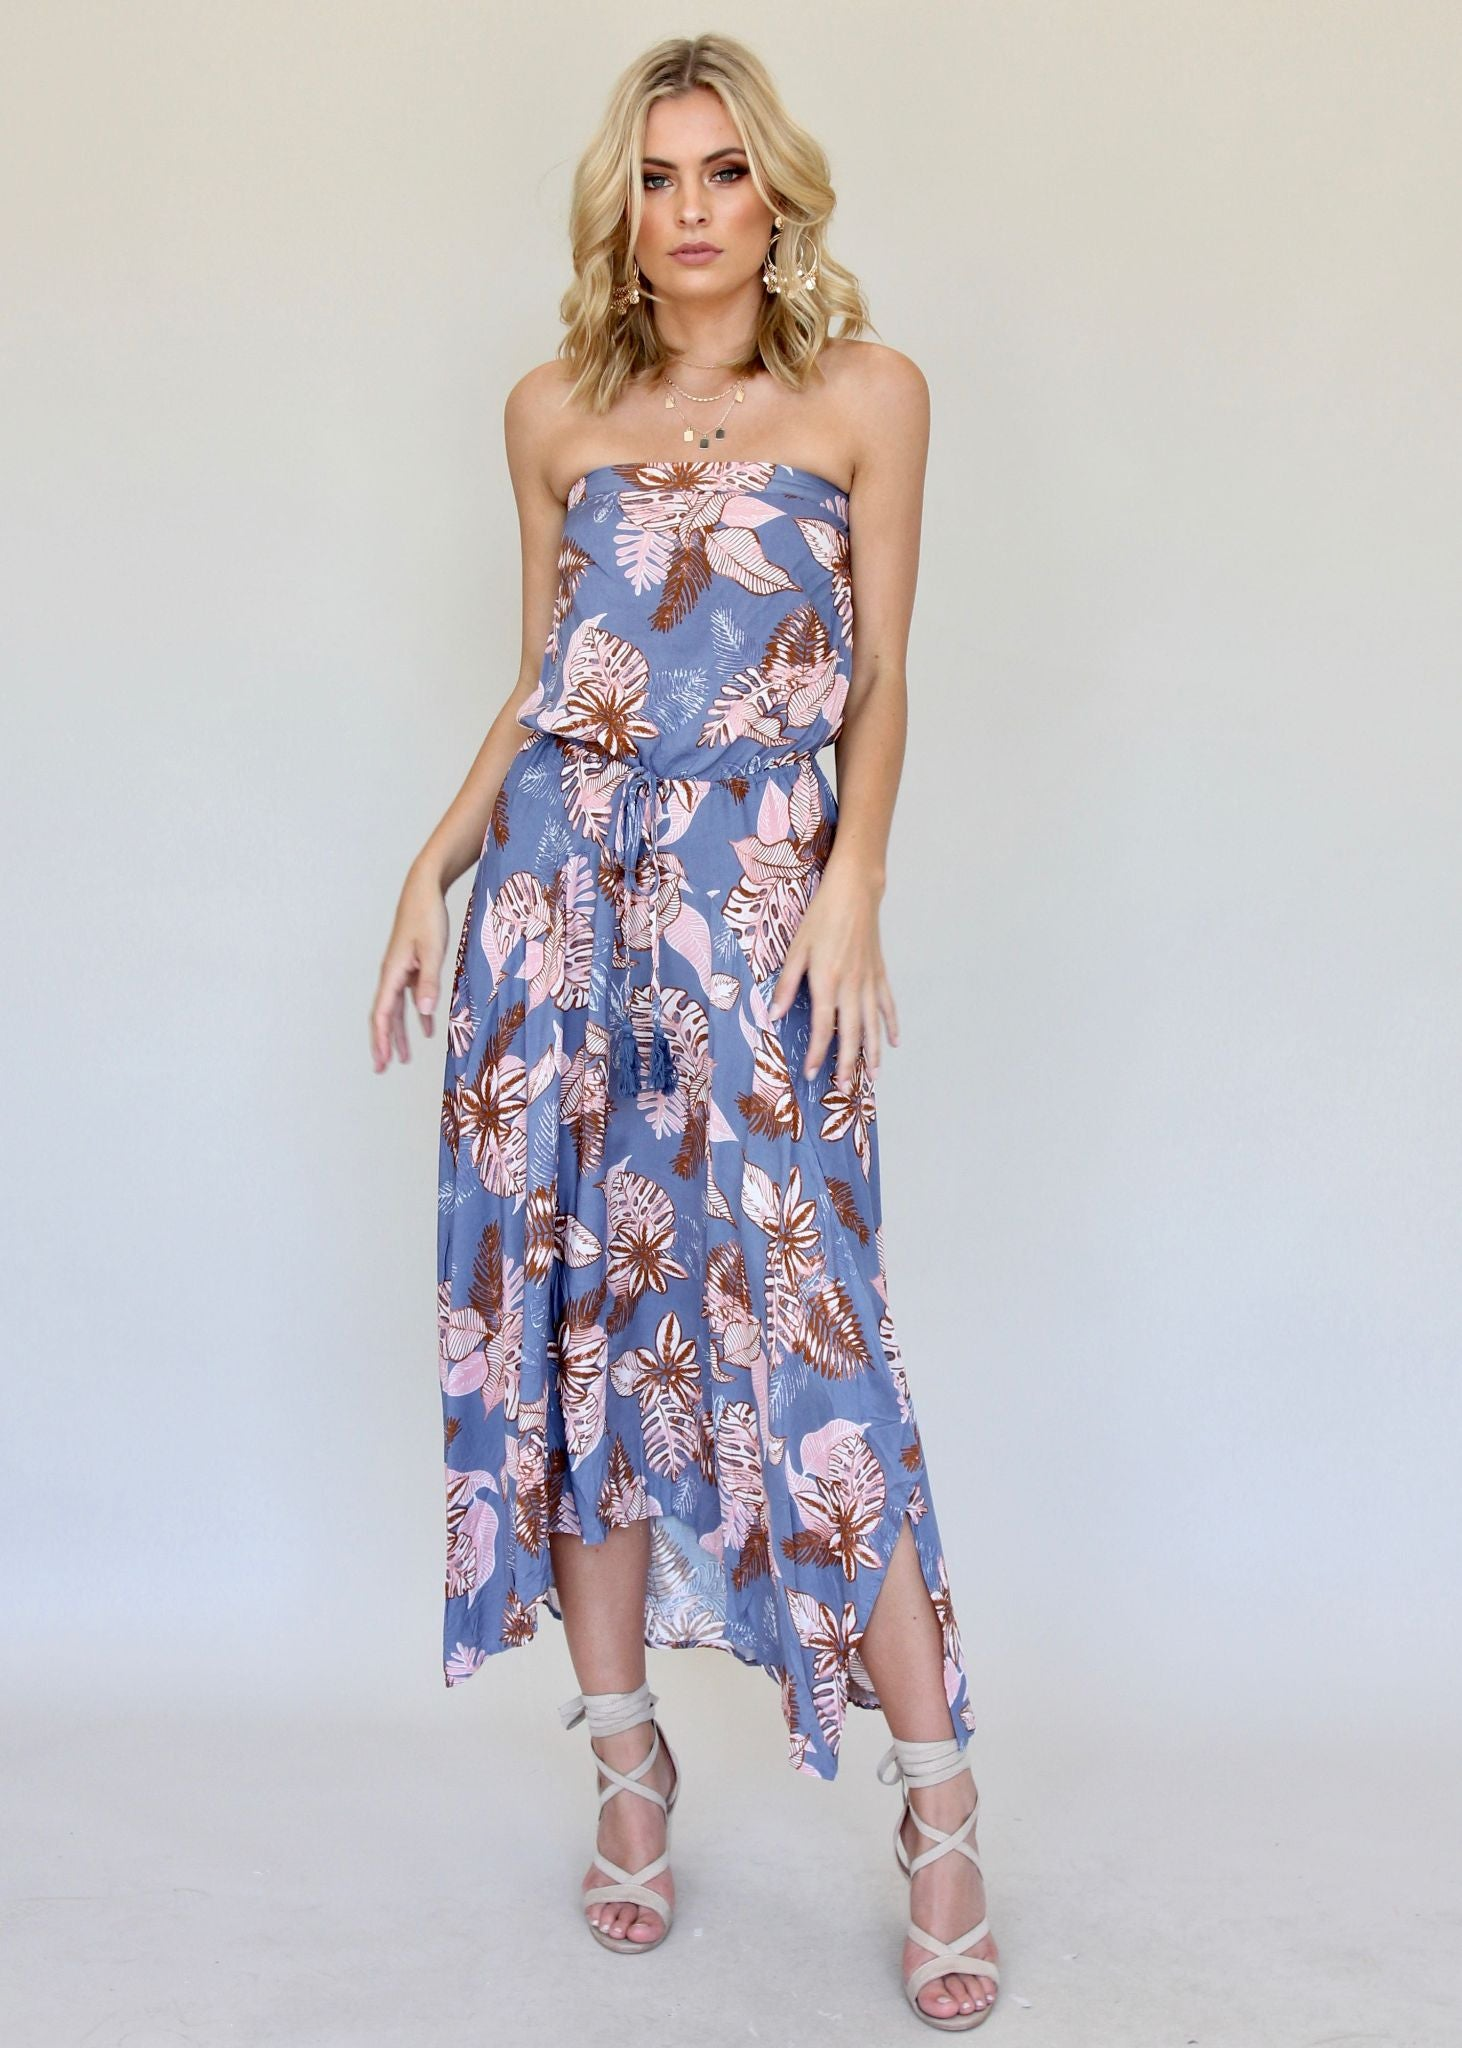 New Freedom Strapless Dress - Bermuda